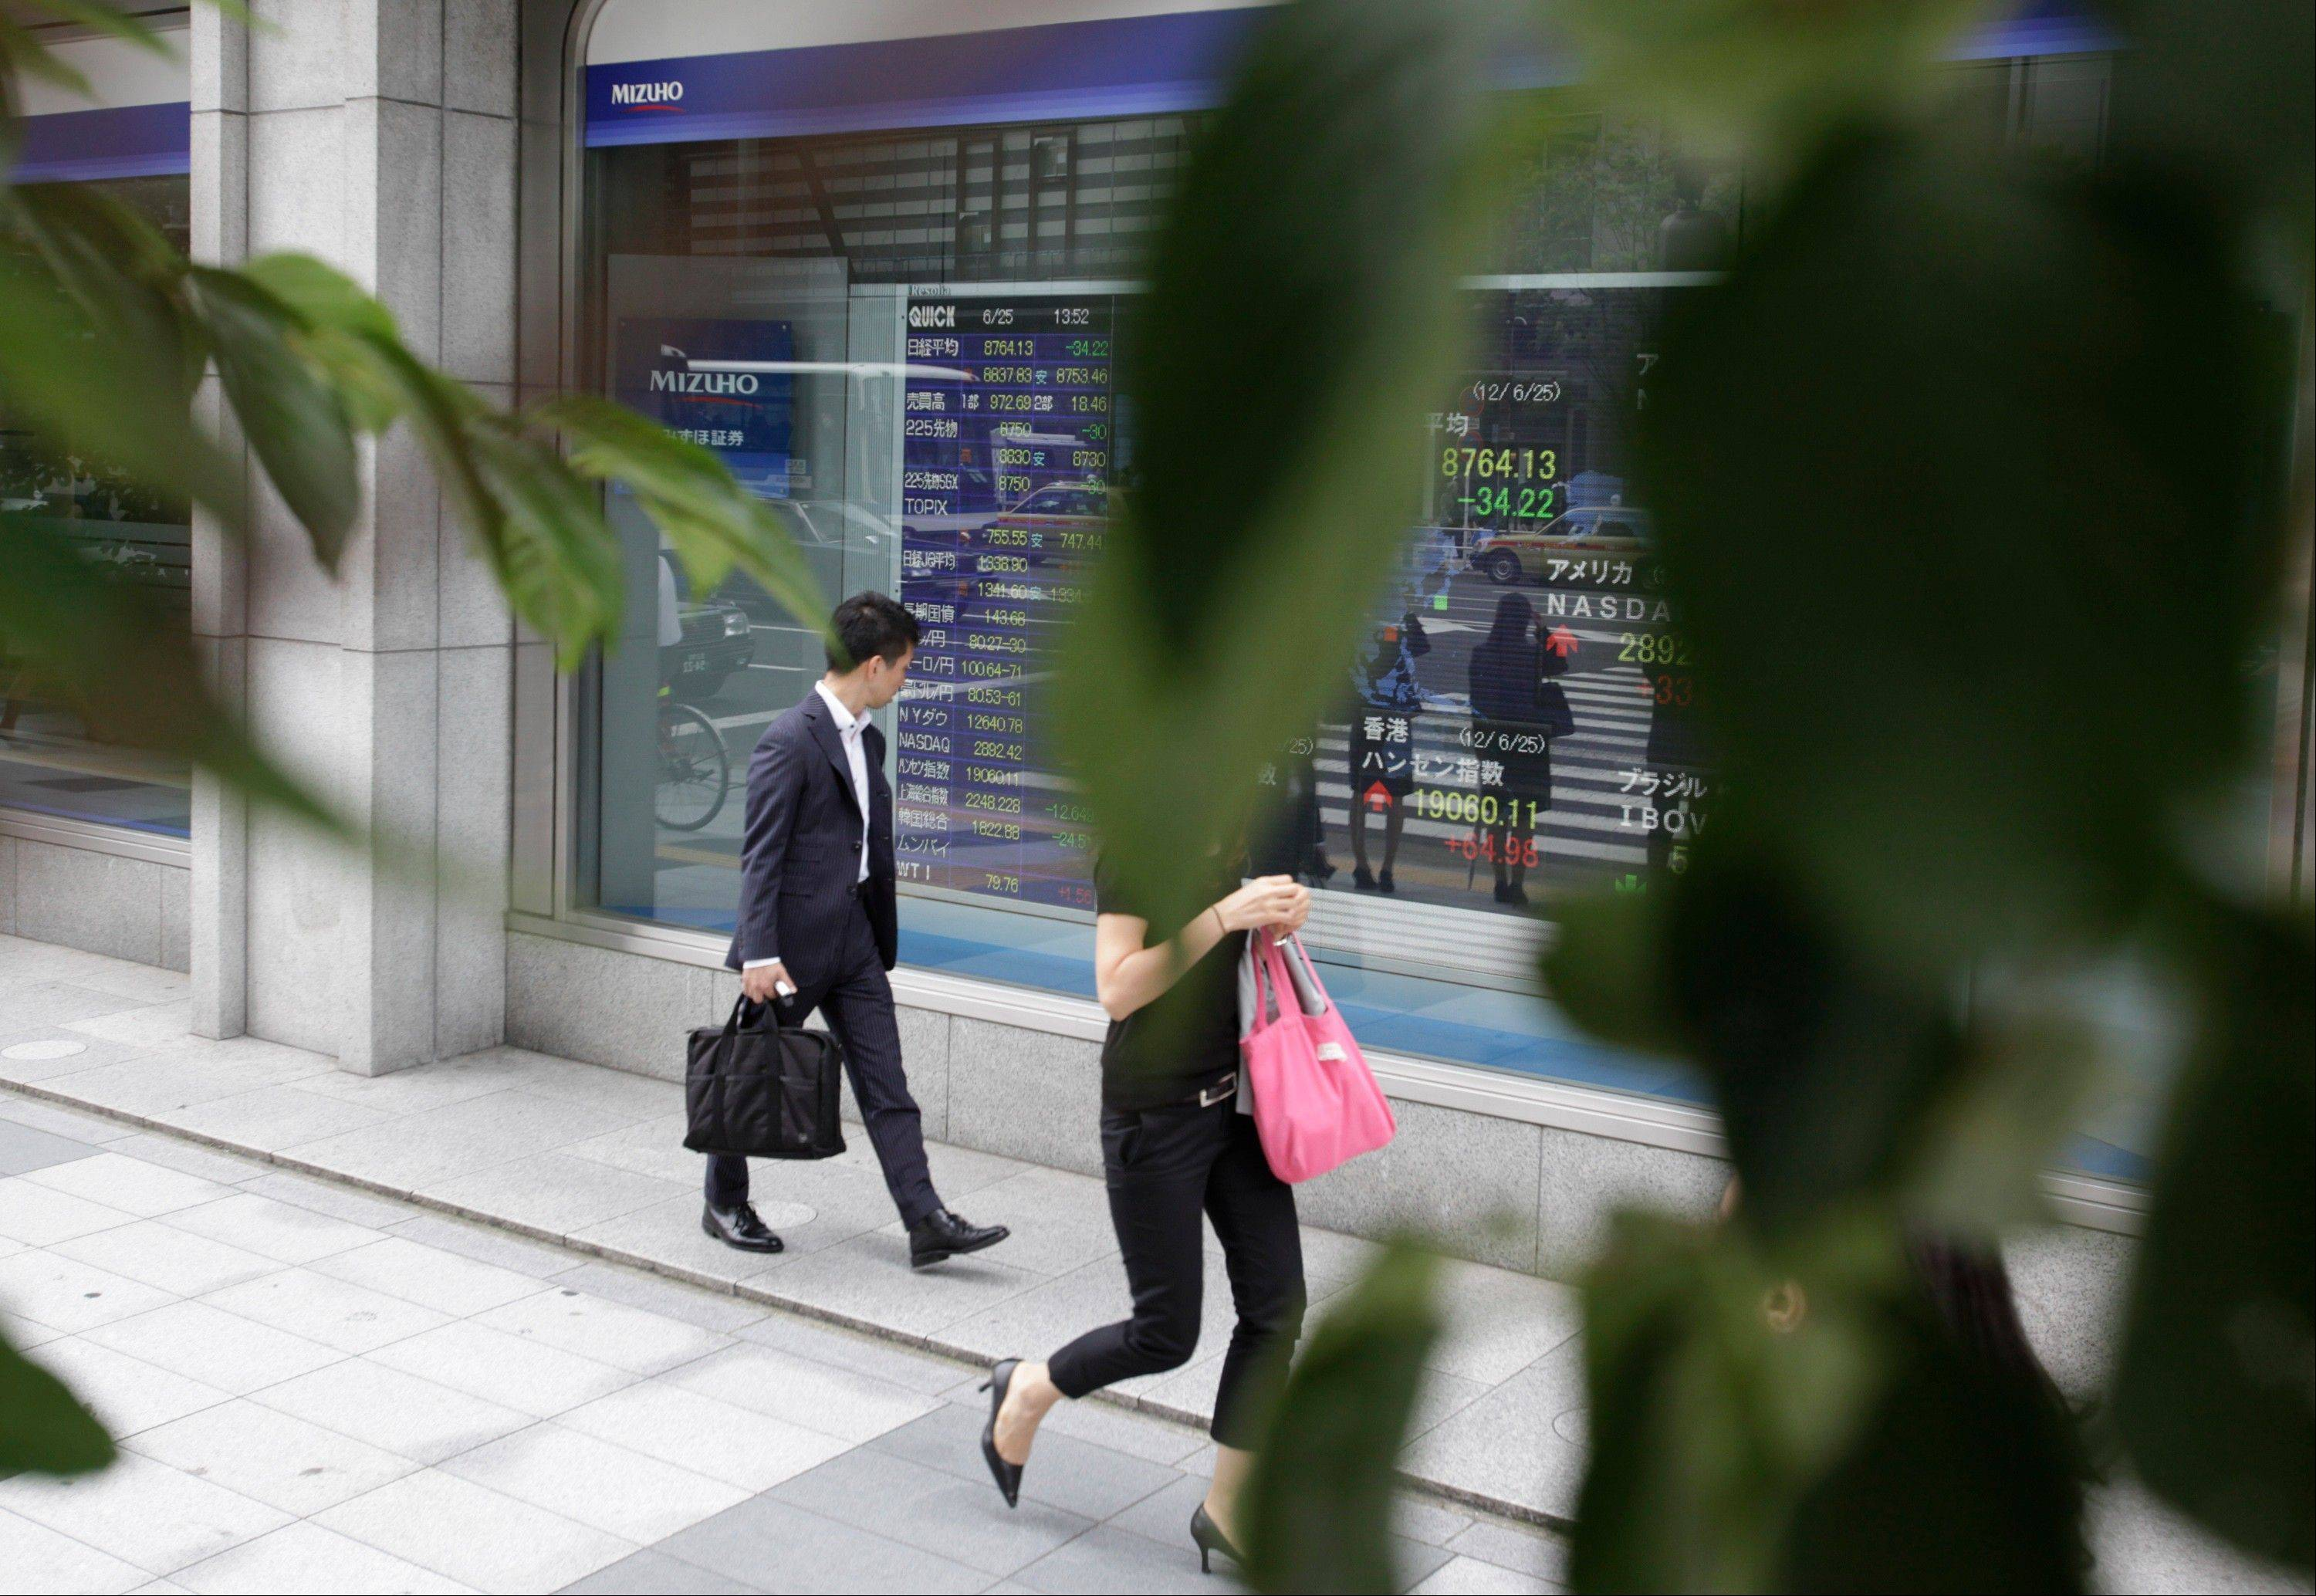 Associated PressA businessman checks a securities firm's electronic stock board in Tokyo Monday.